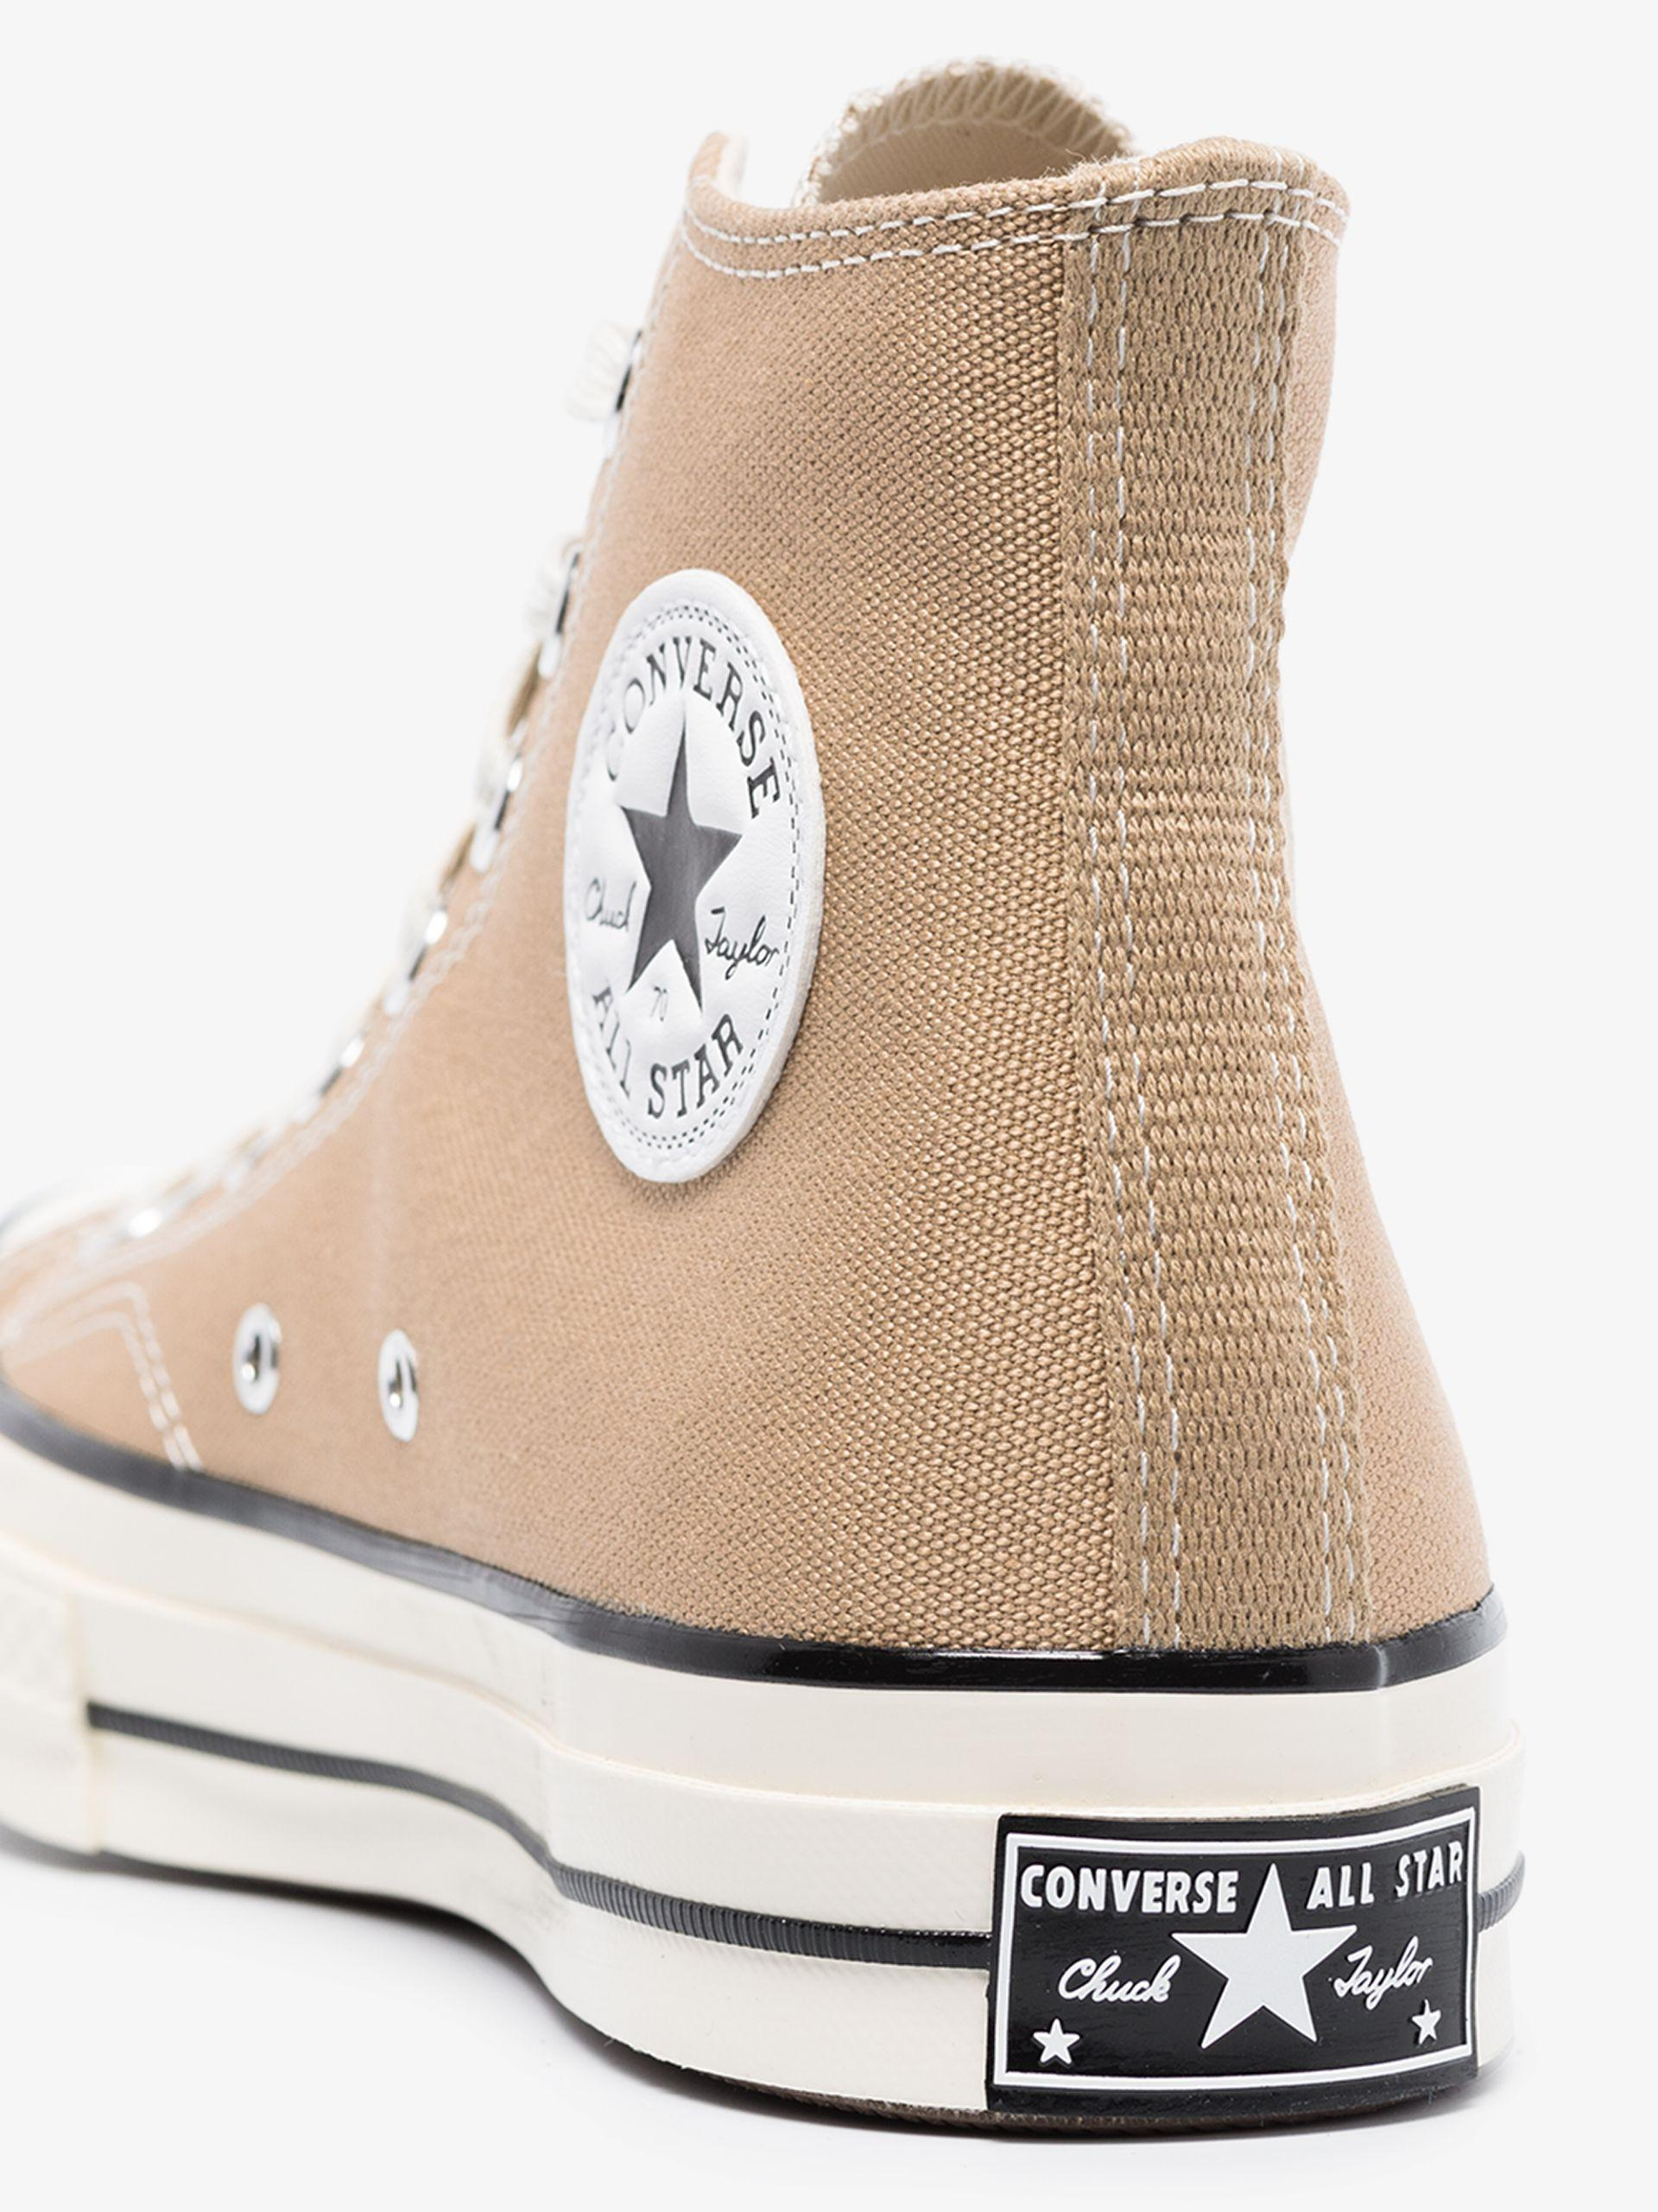 Converse Rubber Beige Chuck 70 High Top Sneakers in Brown - Lyst